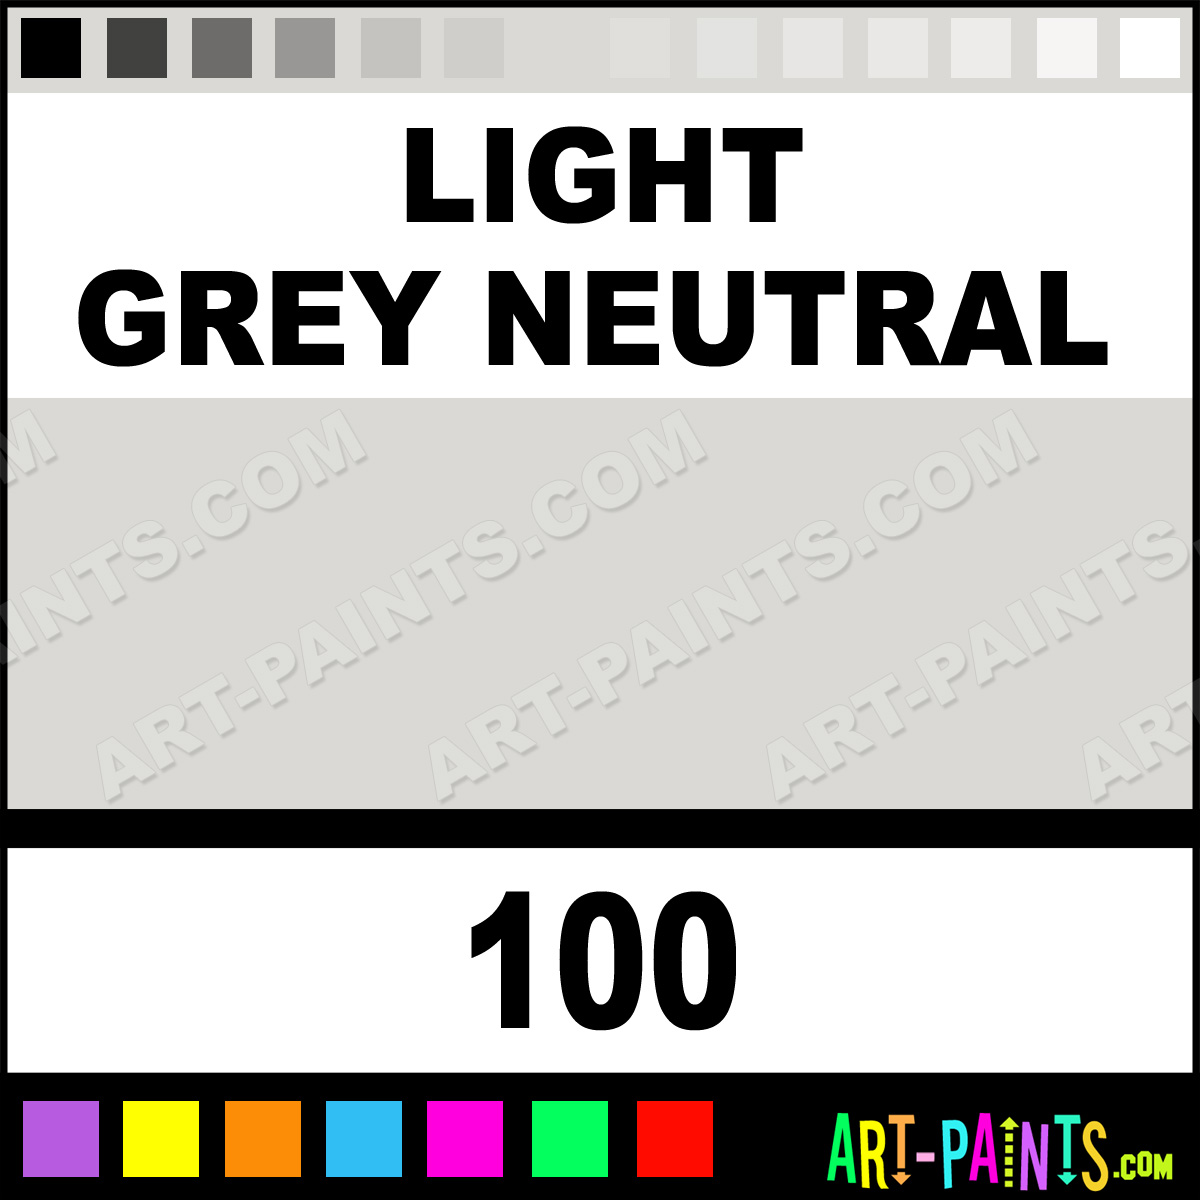 Light grey neutral high pressure spray paints 100 for Light neutral paint colors